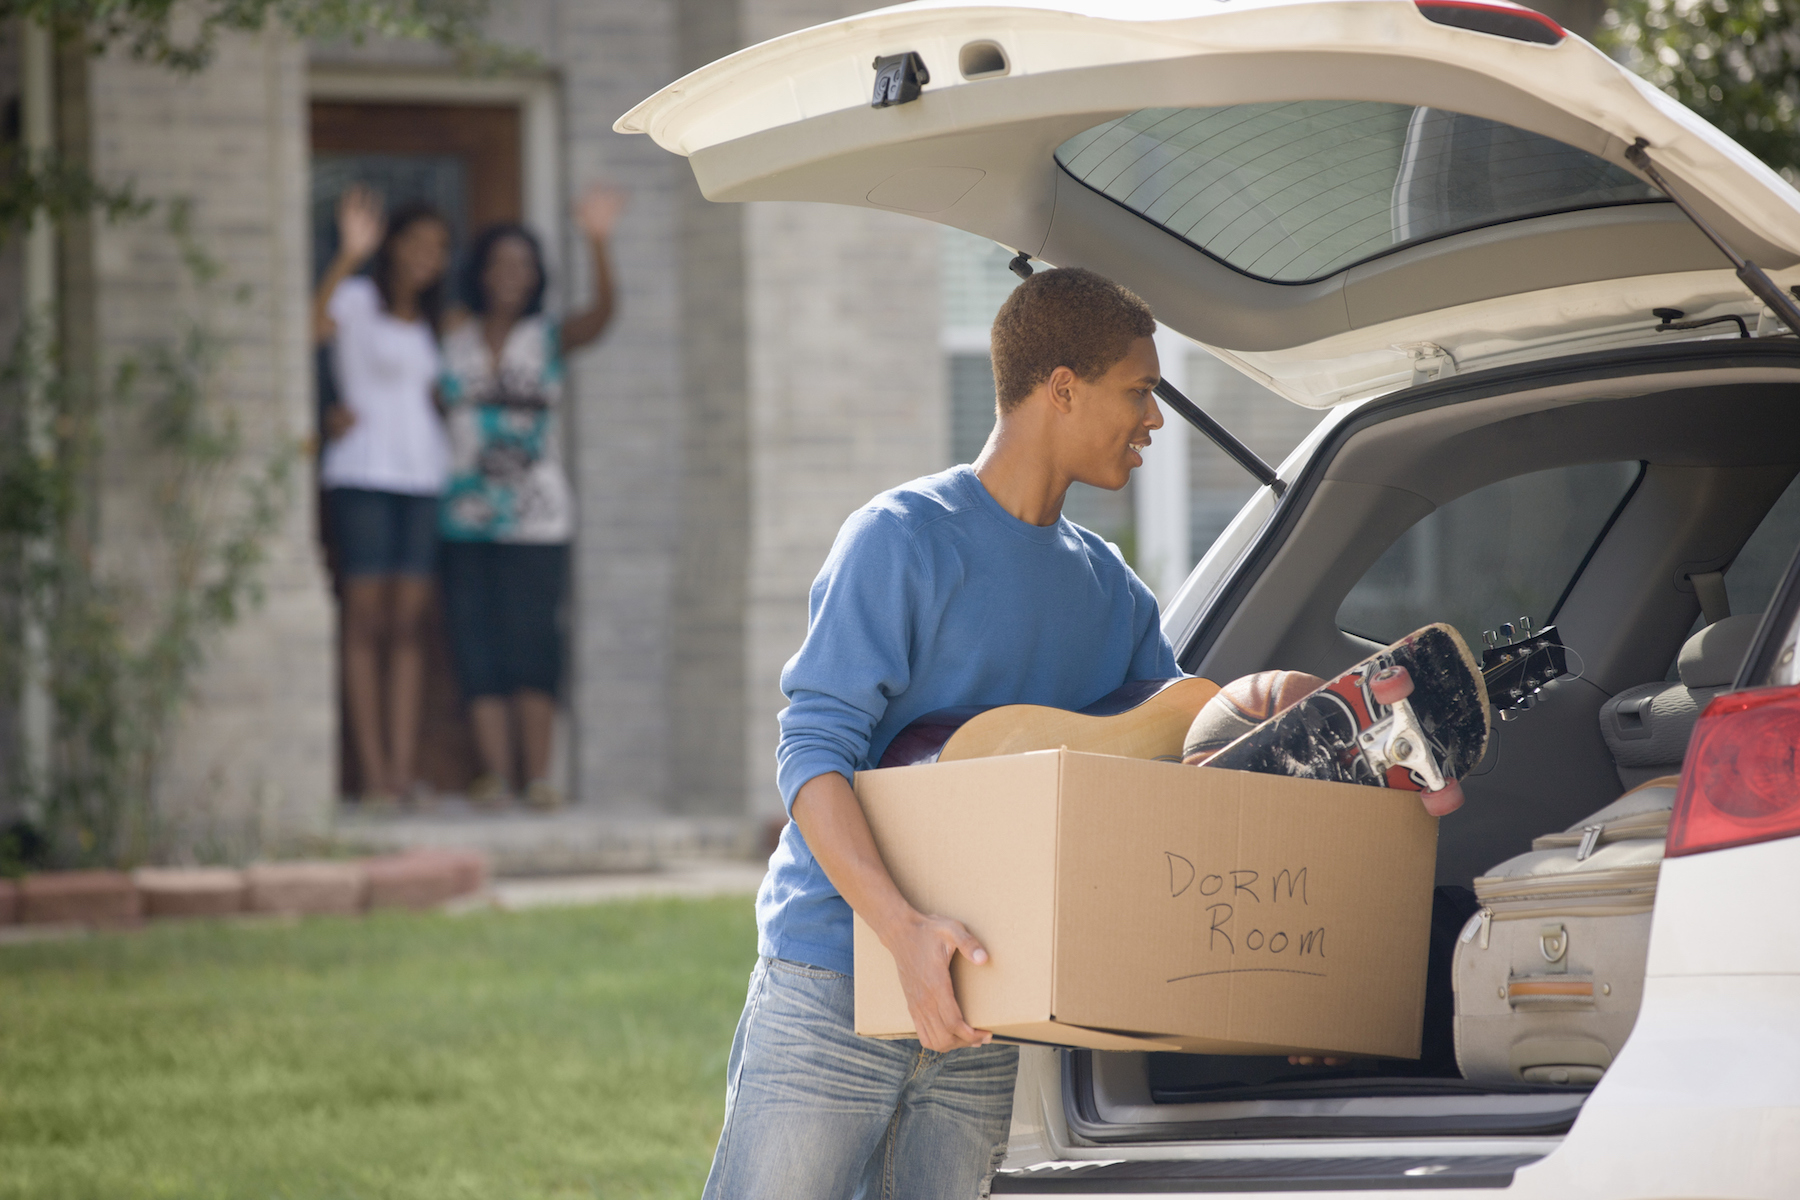 Teen packing car for college